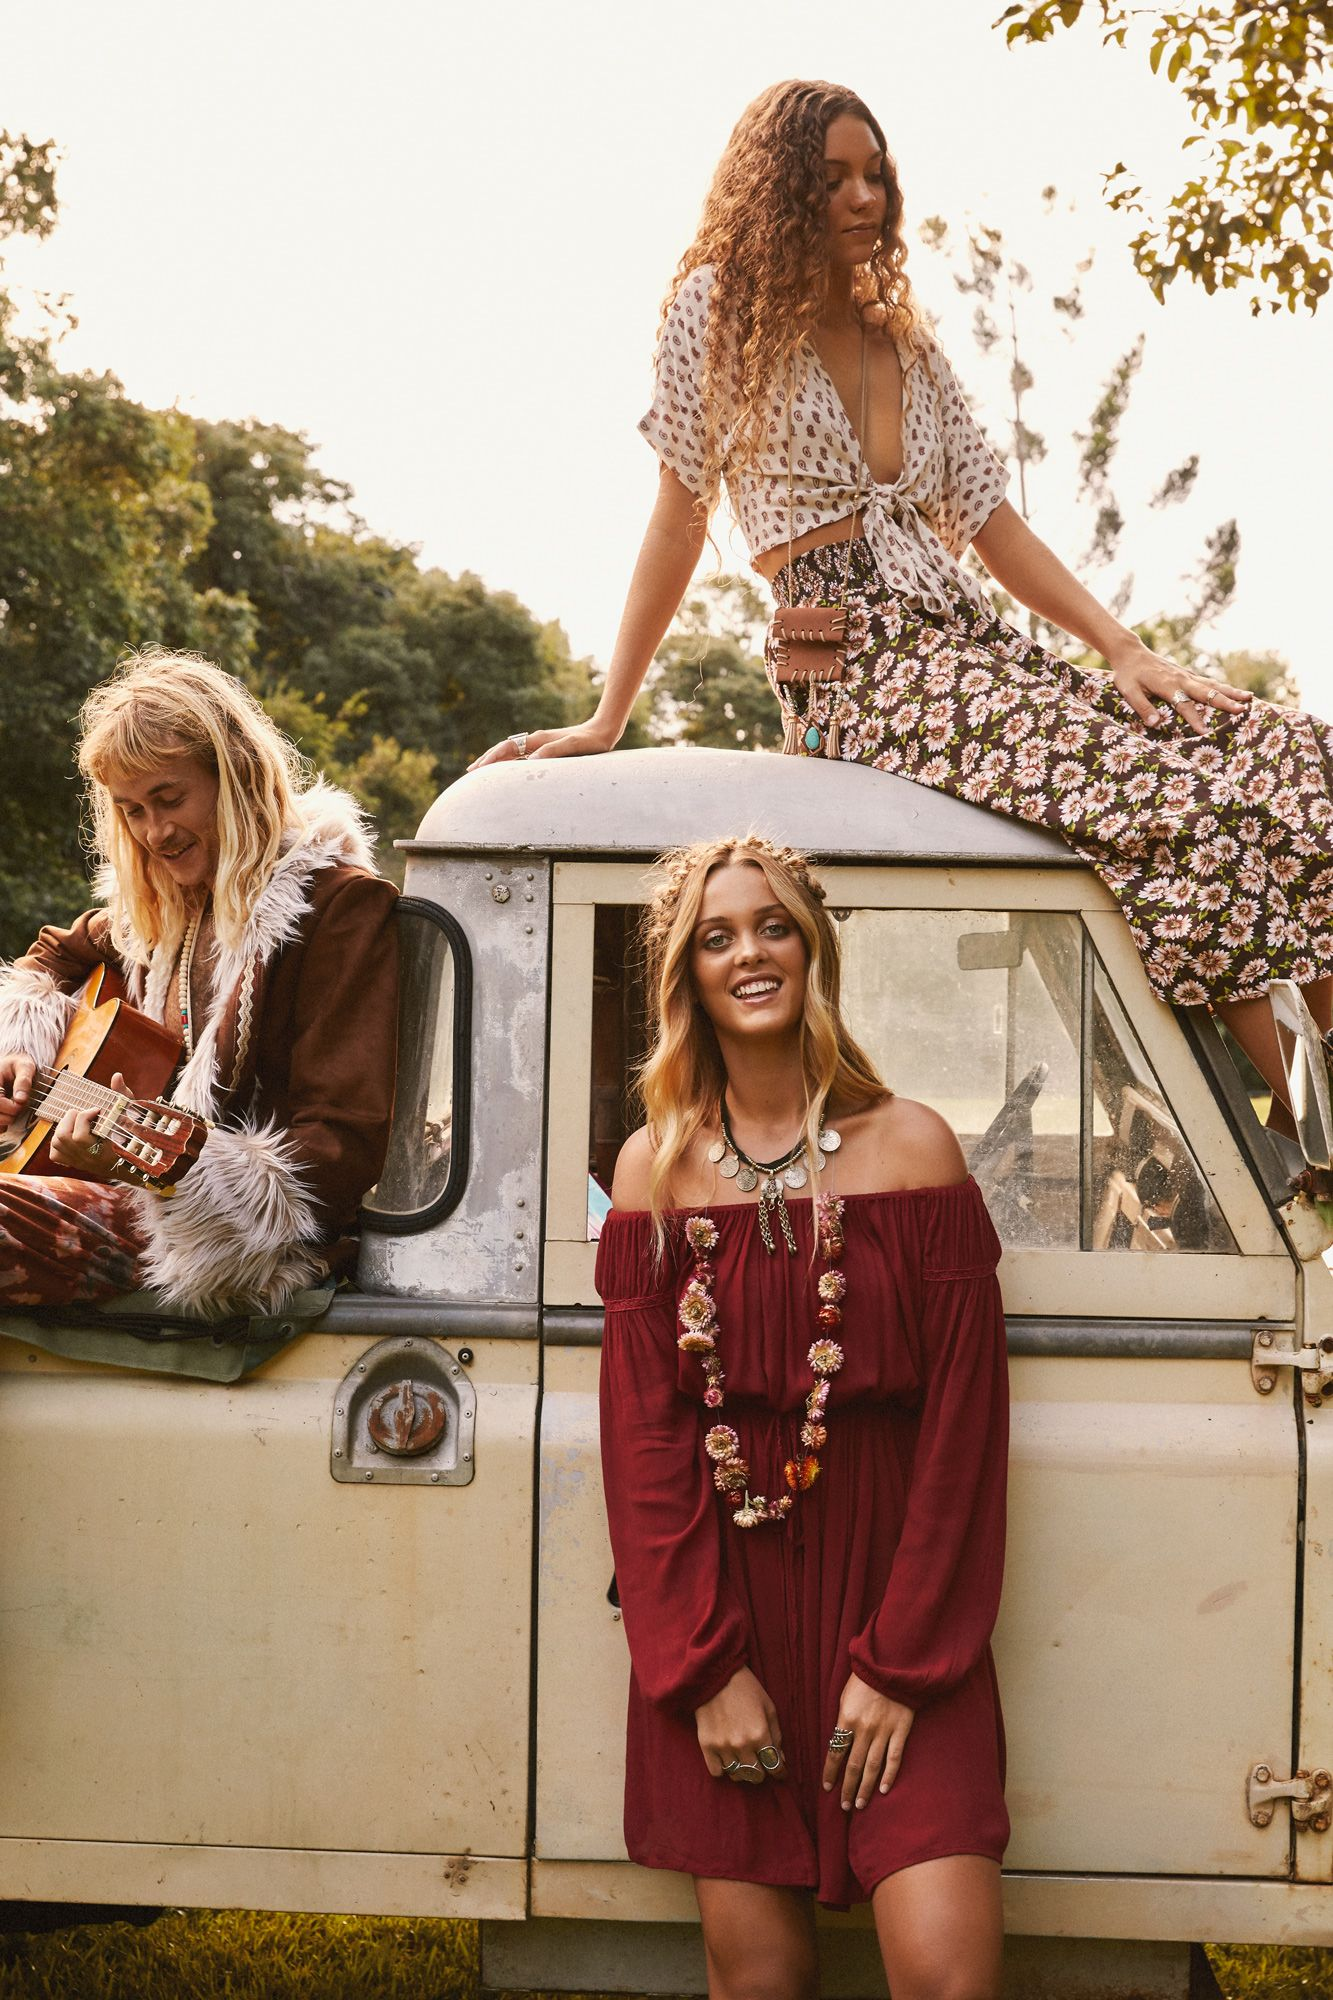 Hippie style in clothes and in life 80